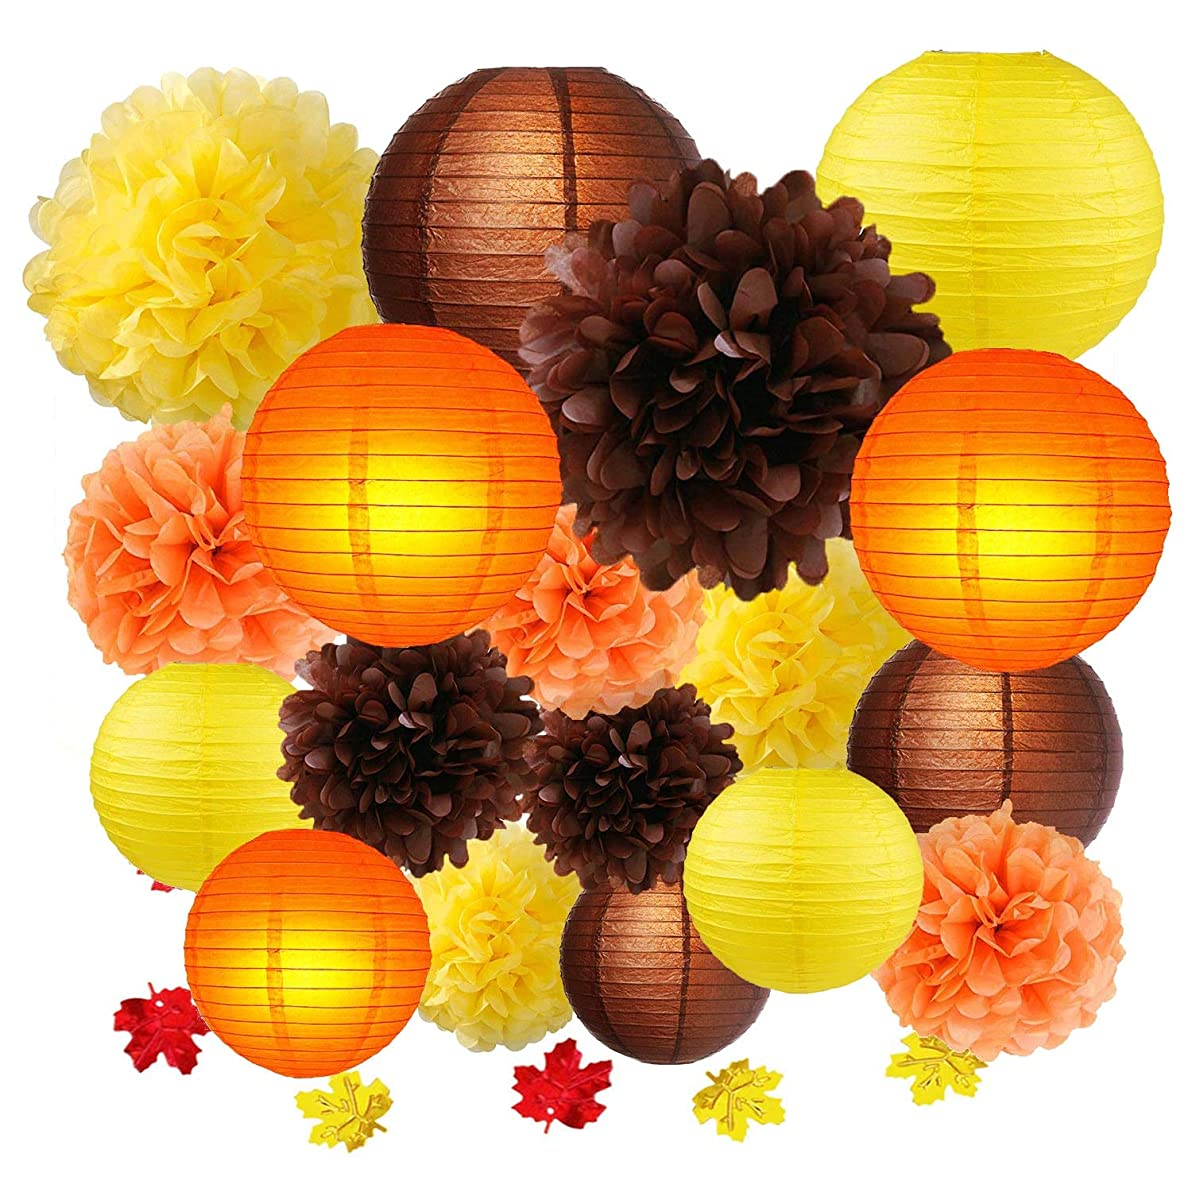 Thanksgiving Party Decoration kit, Fall Harvest Yellow Orange Brown Hanging Tissue Paper Pom poms Paper Lanterns, Autumn Confetti Table Decorate Baby Shower Wedding Birthday Party Supply